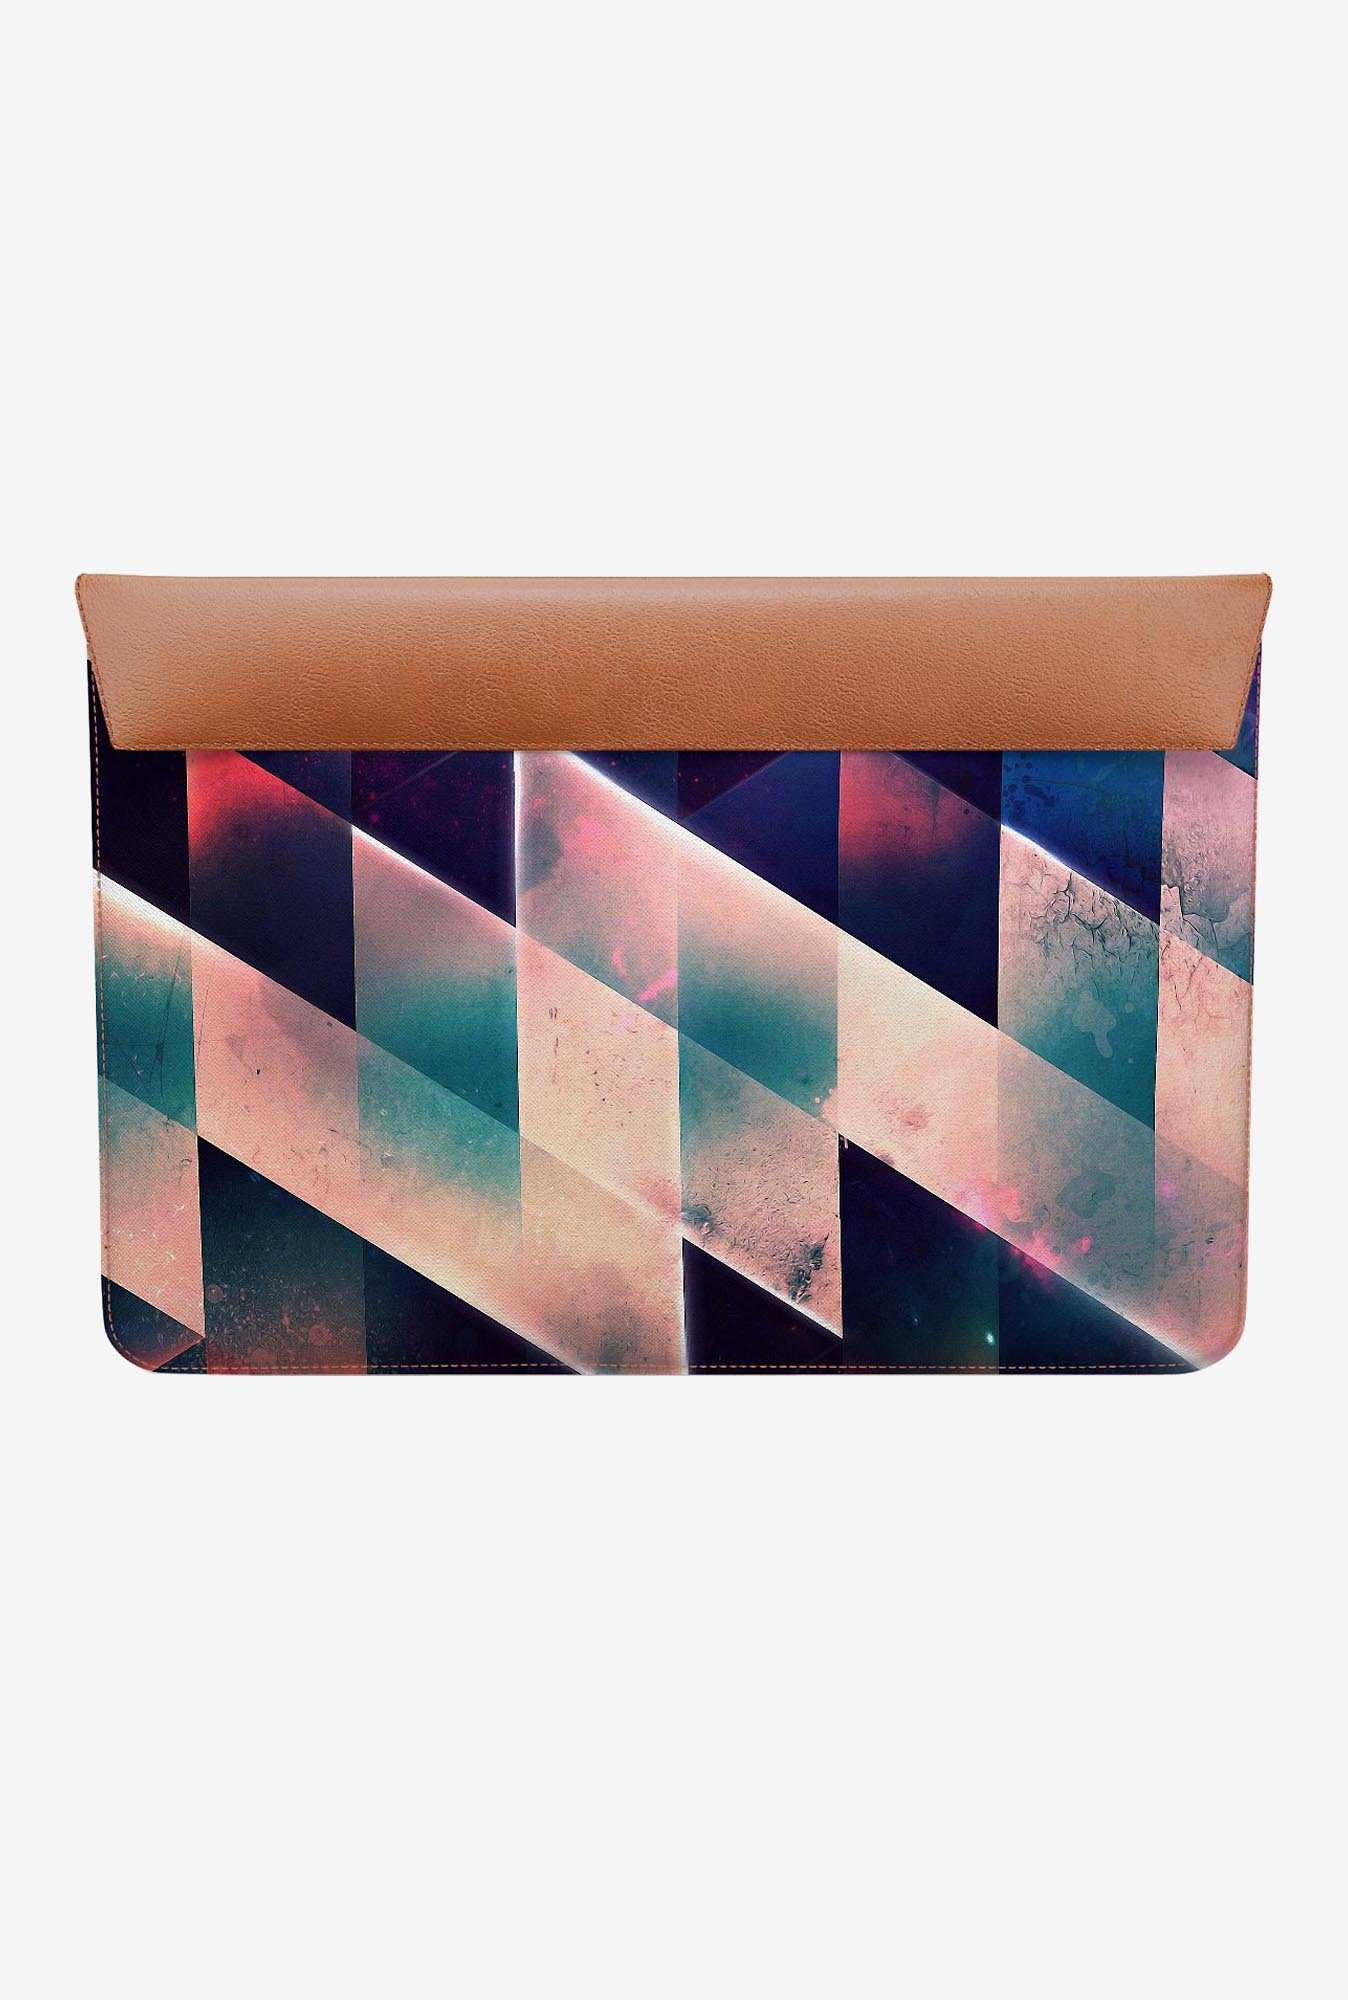 "DailyObjects Brykyng Brykyn Macbook Air 11"" Envelope Sleeve"